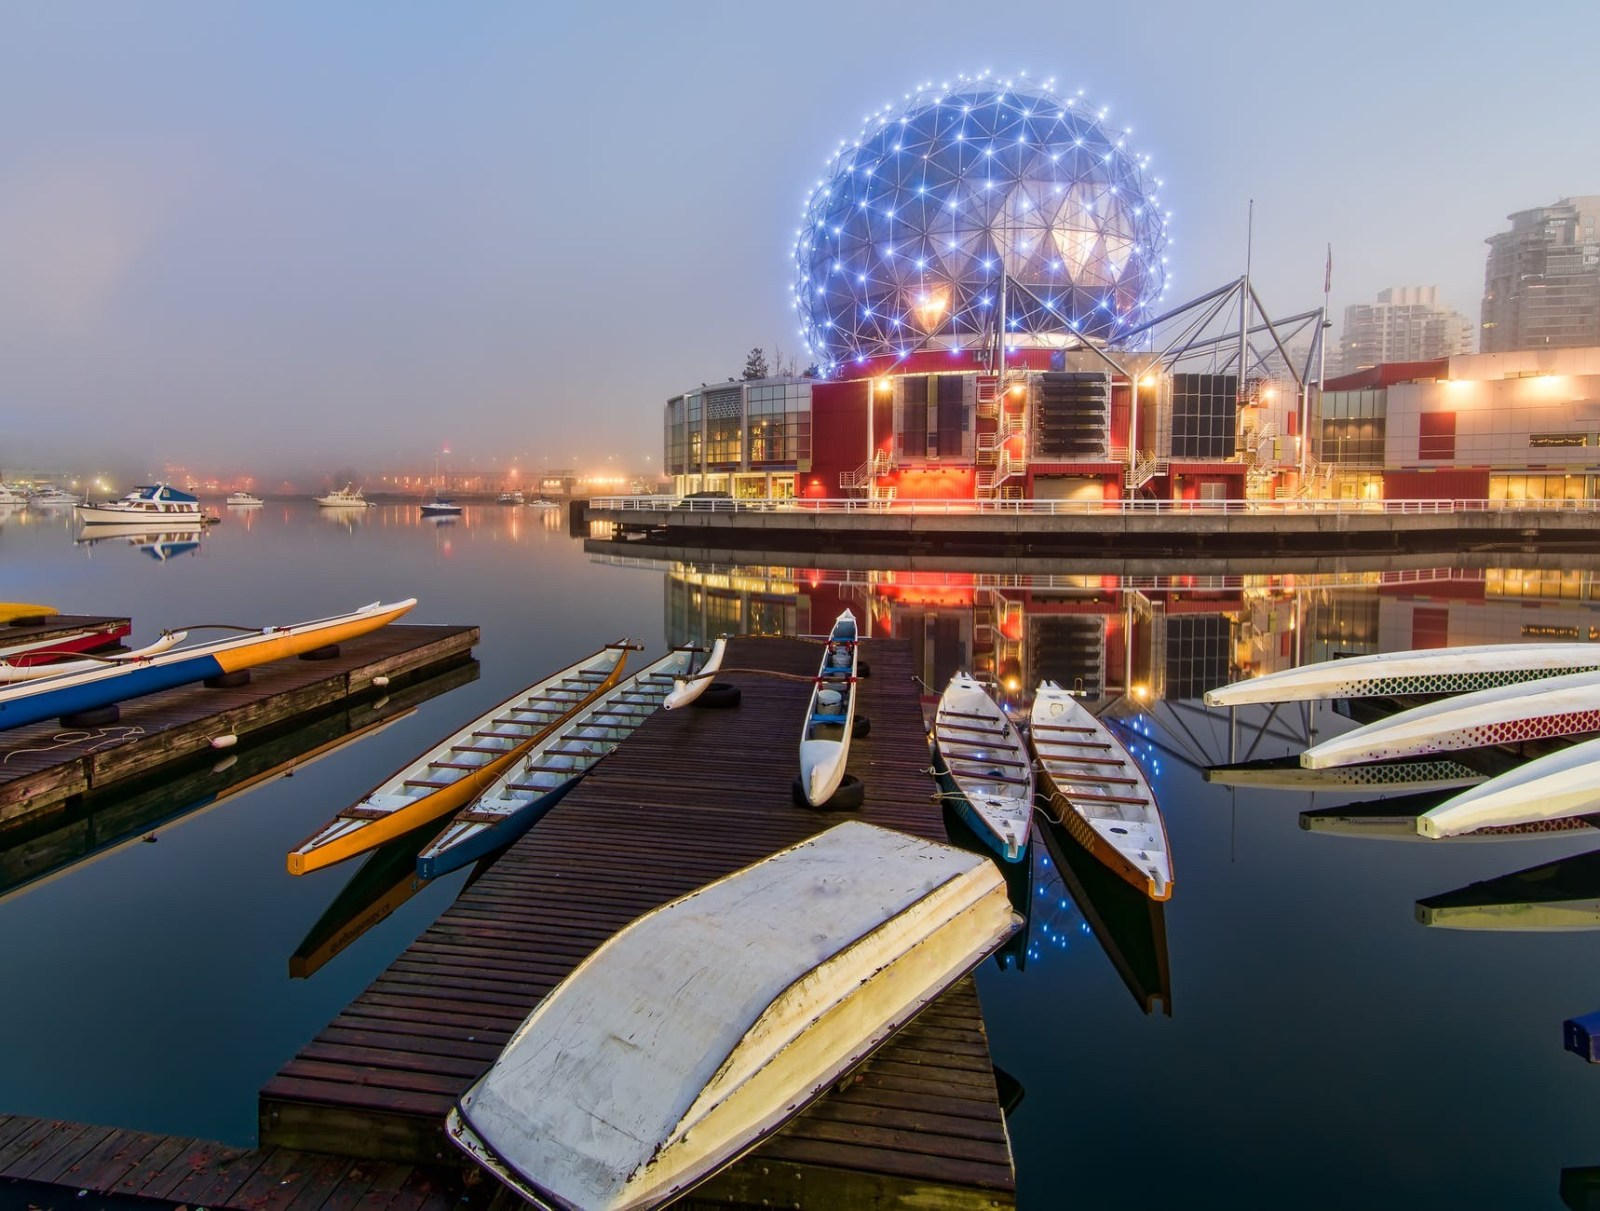 Flight Deal Round Trip From Los Angeles Area to Vancouver #losangeles #vancouver